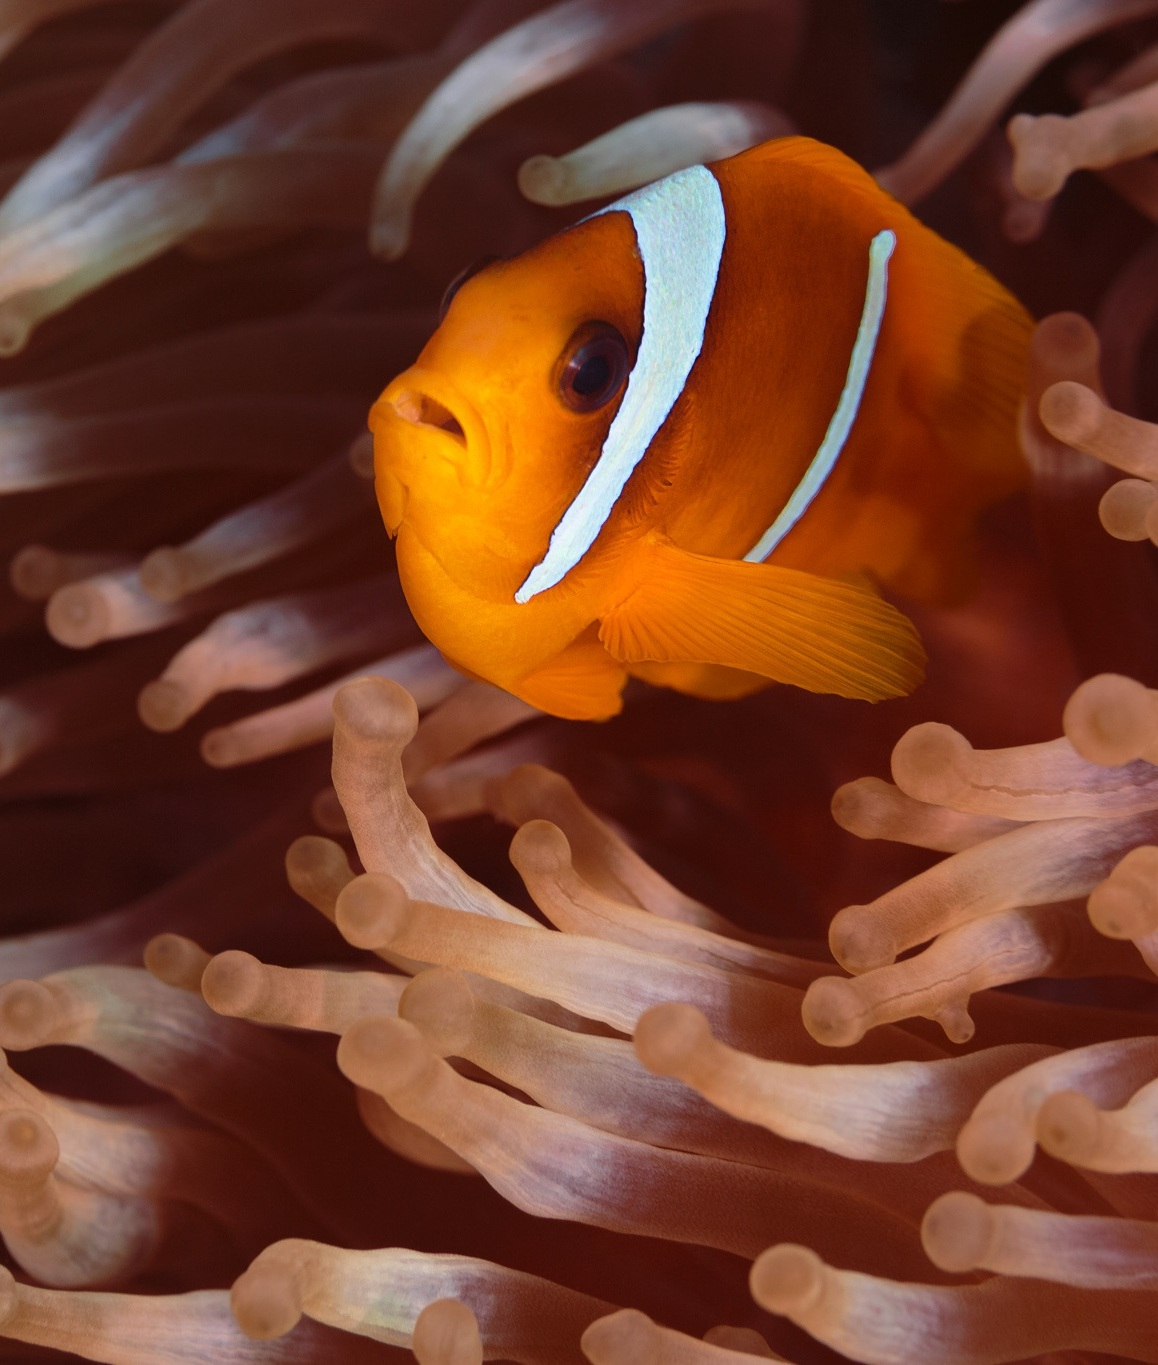 A clownfish hiding inside poisonous anemone.